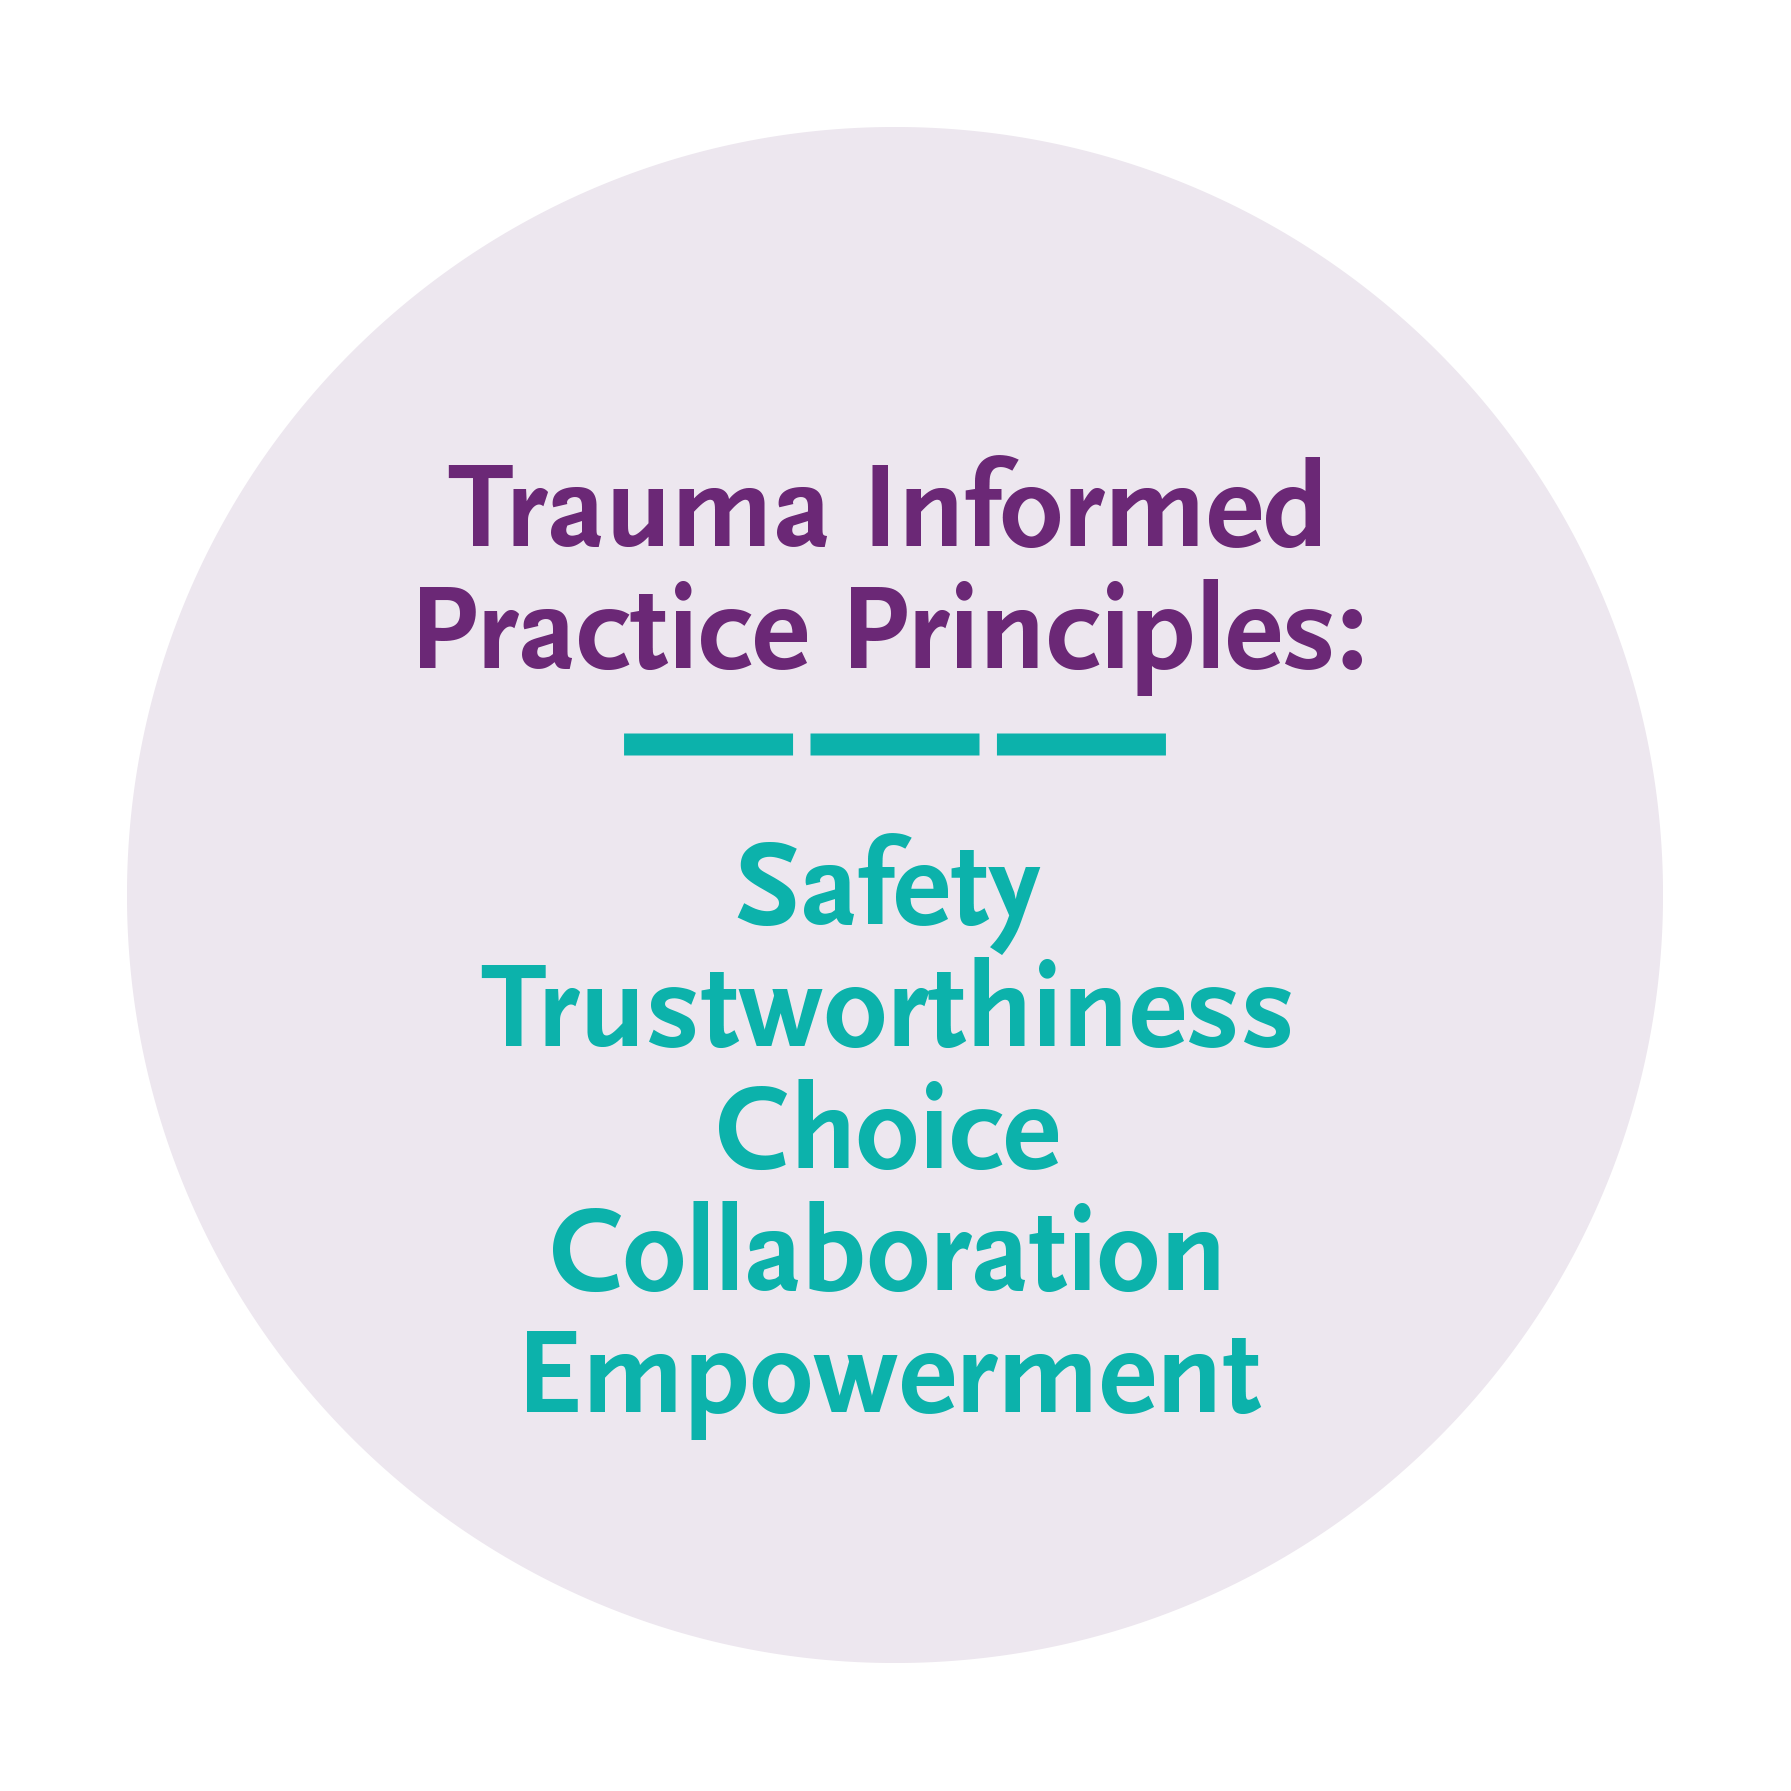 Trauma informed practice principles